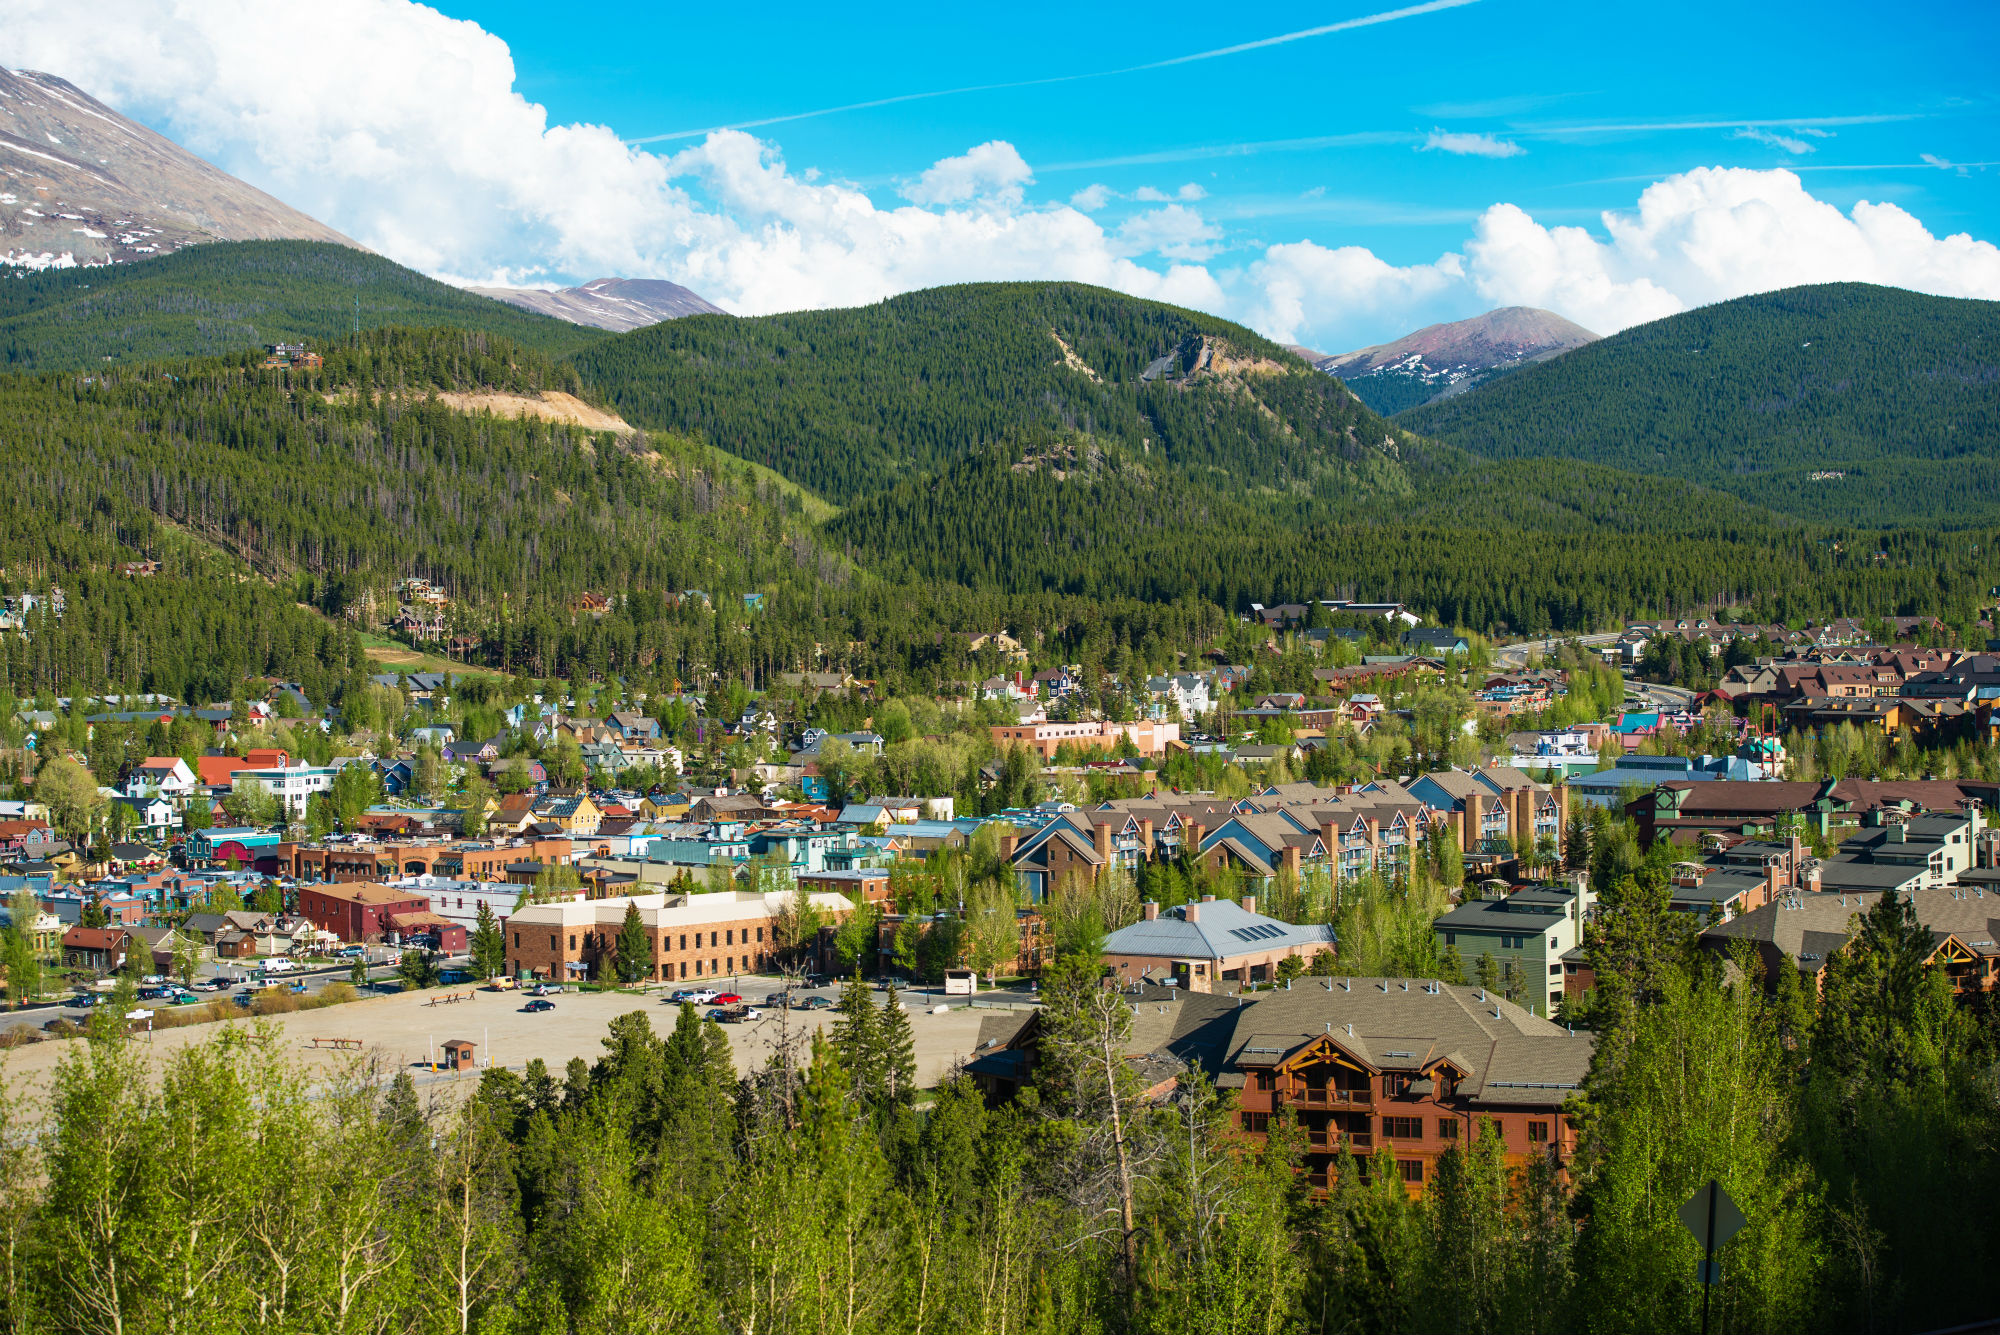 Art Festivals in Breckenridge CO 2019